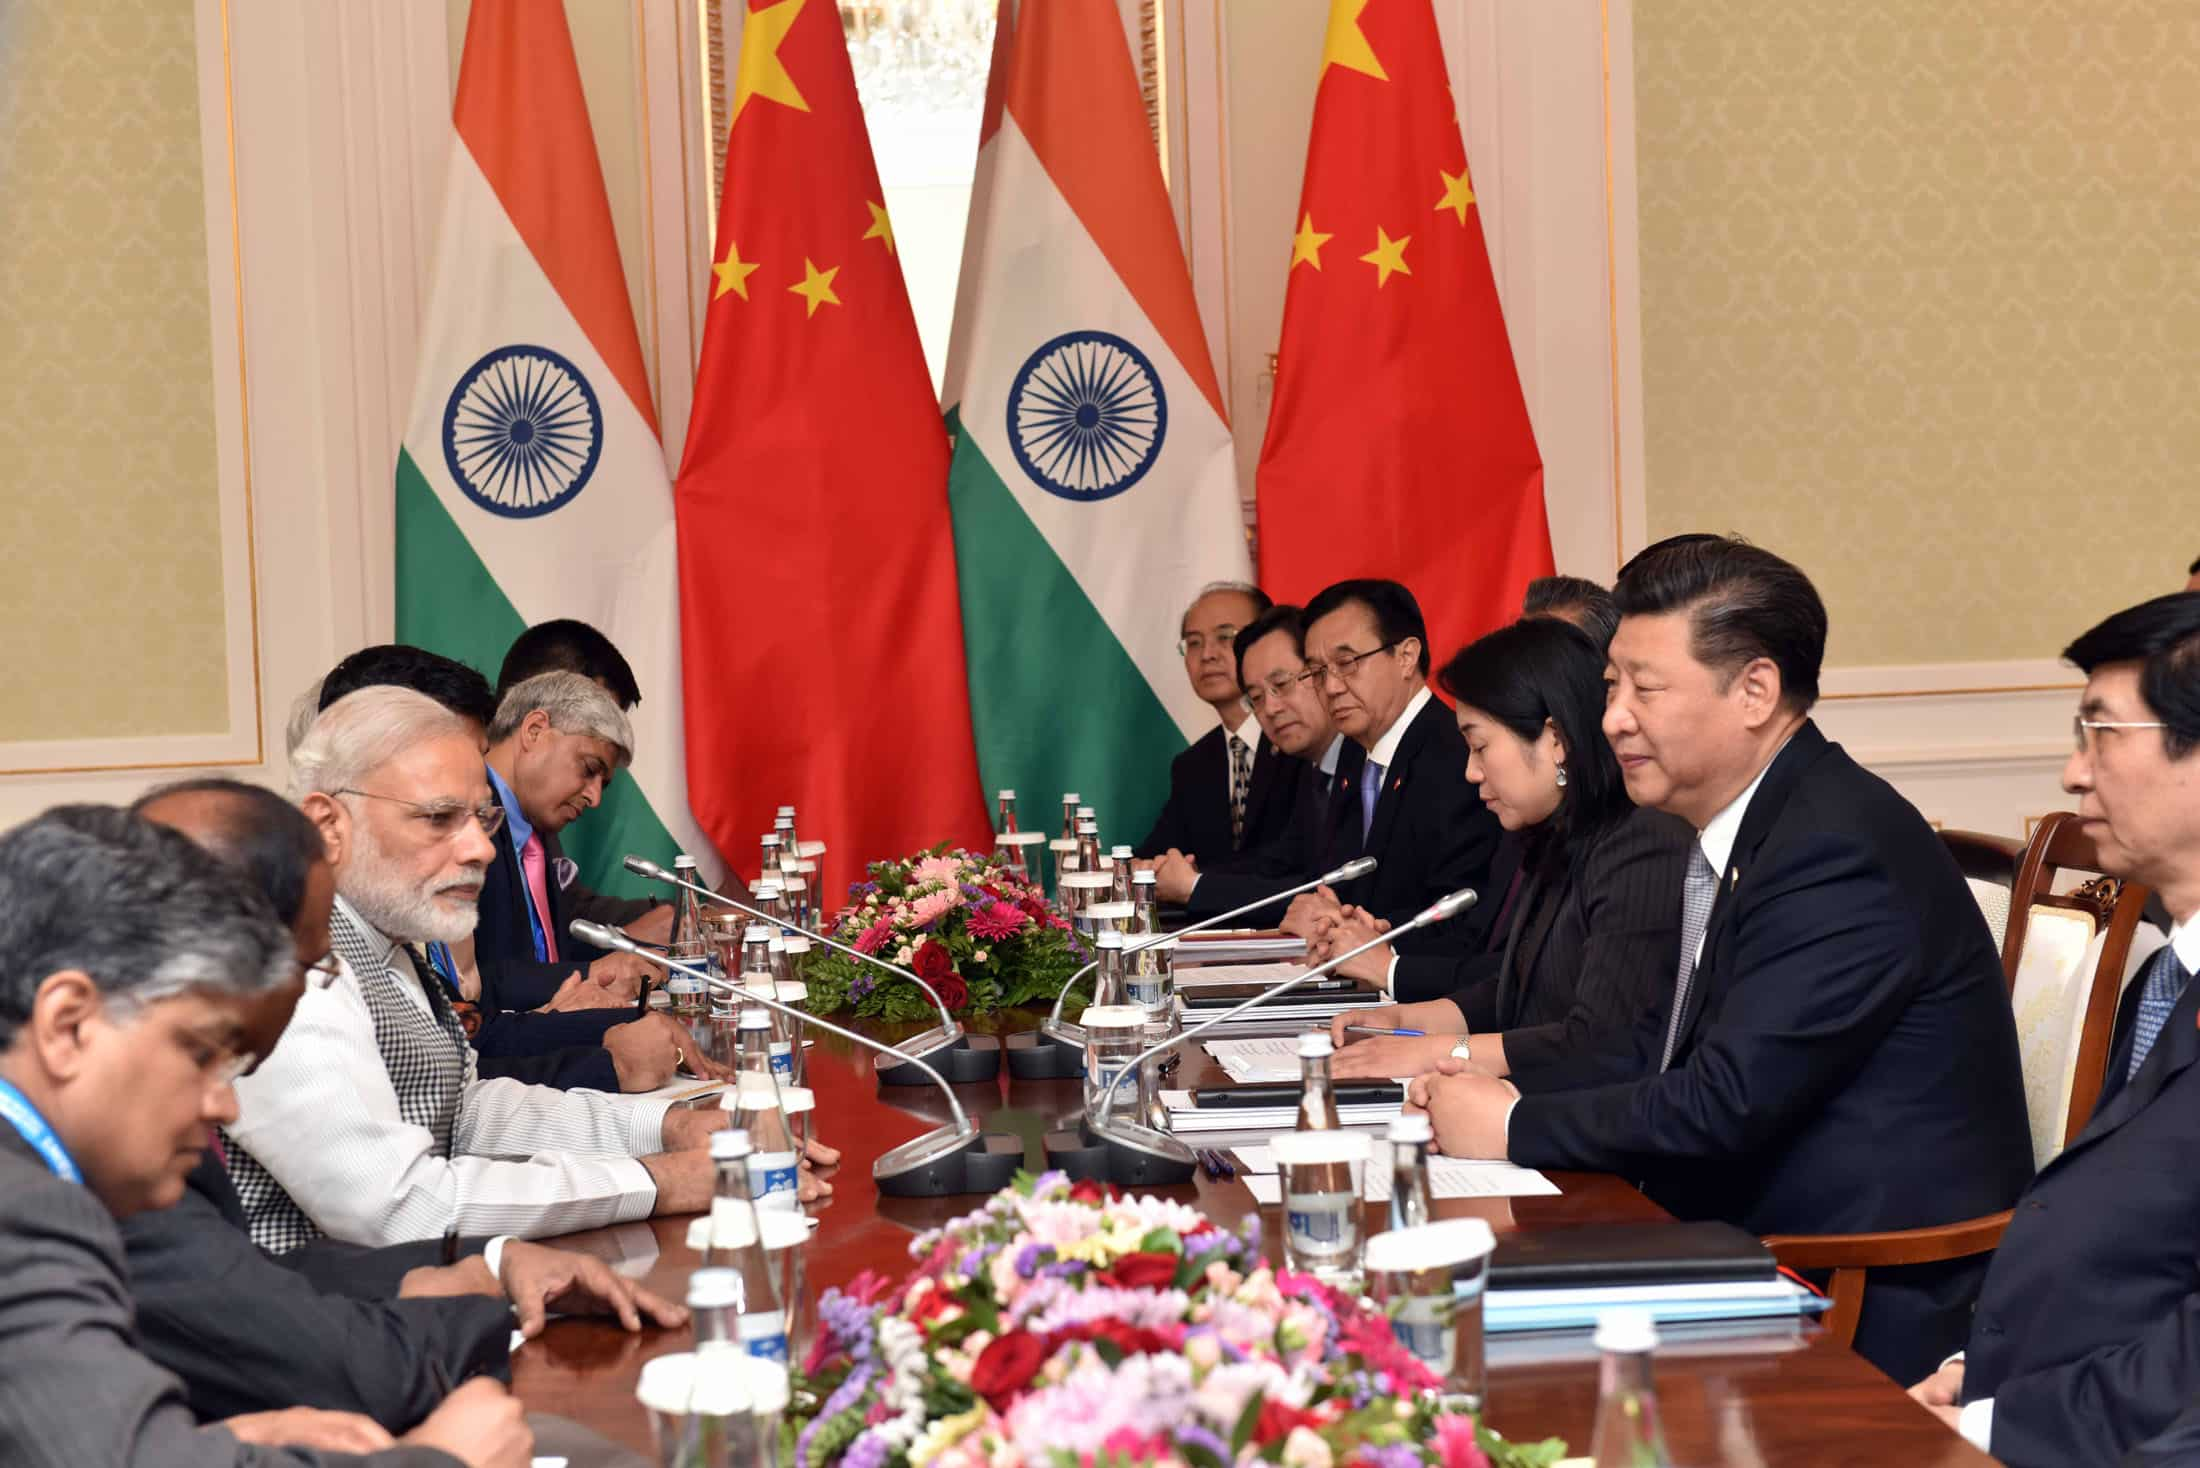 The Prime Minister, Shri Narendra Modi in a bilateral meeting with the President of the People's Republic of China, Mr. Xi Jinping, in Tashkent, Uzbekistan on June 23, 2016.